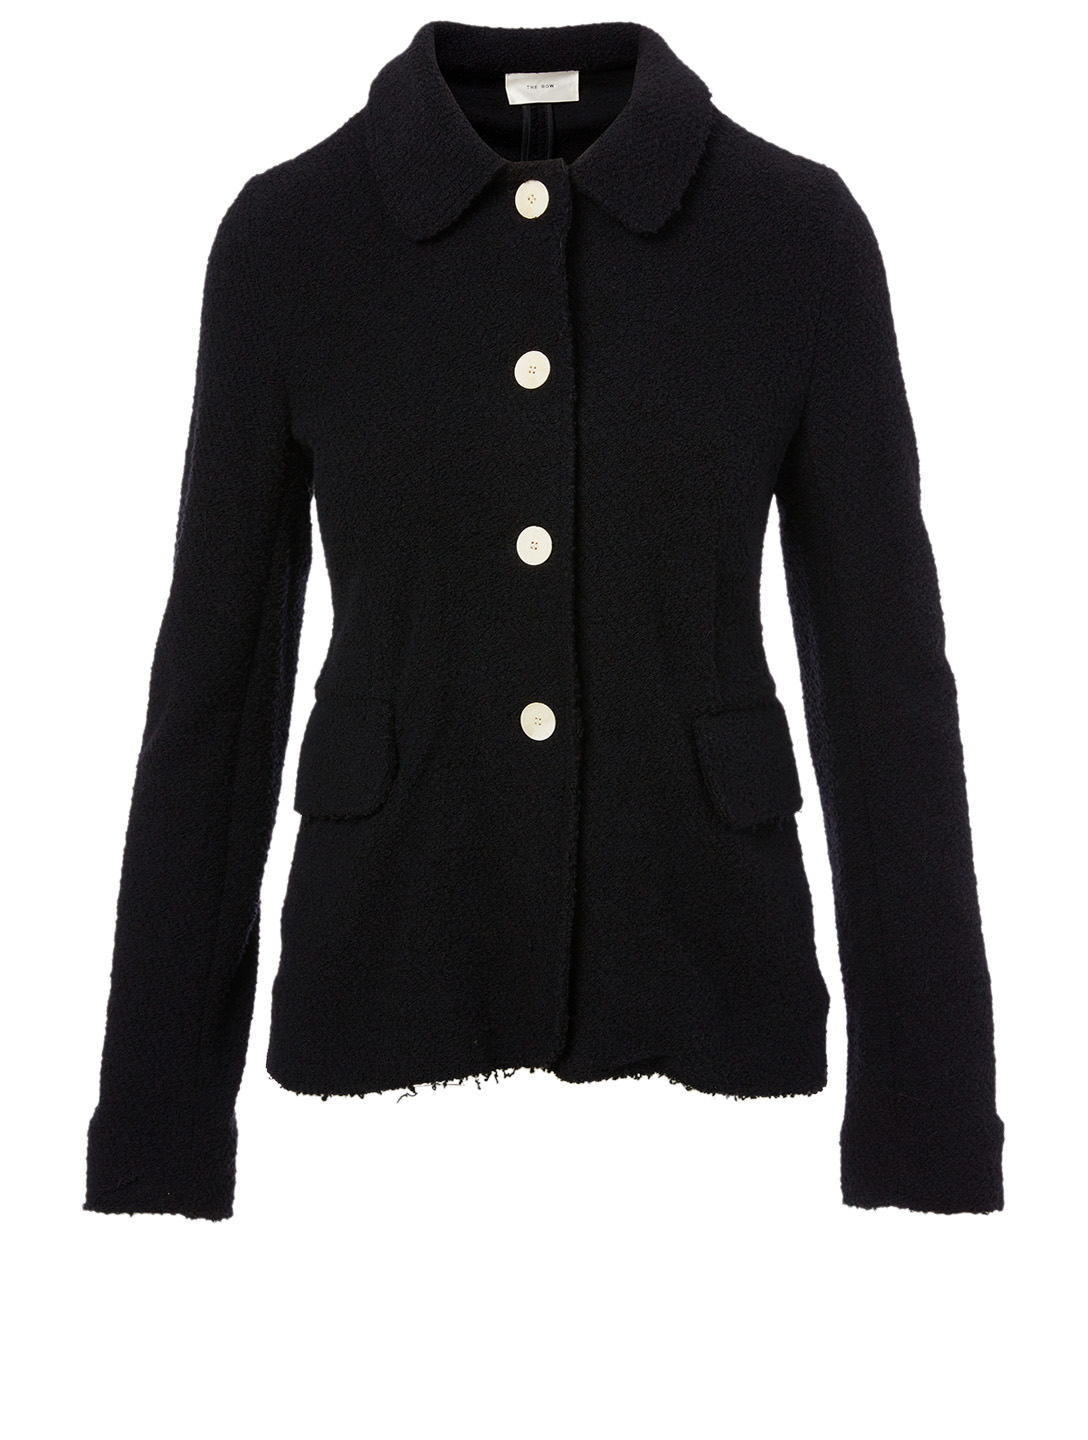 THE ROW Annica Boucle Jersey Jacket Women's Black